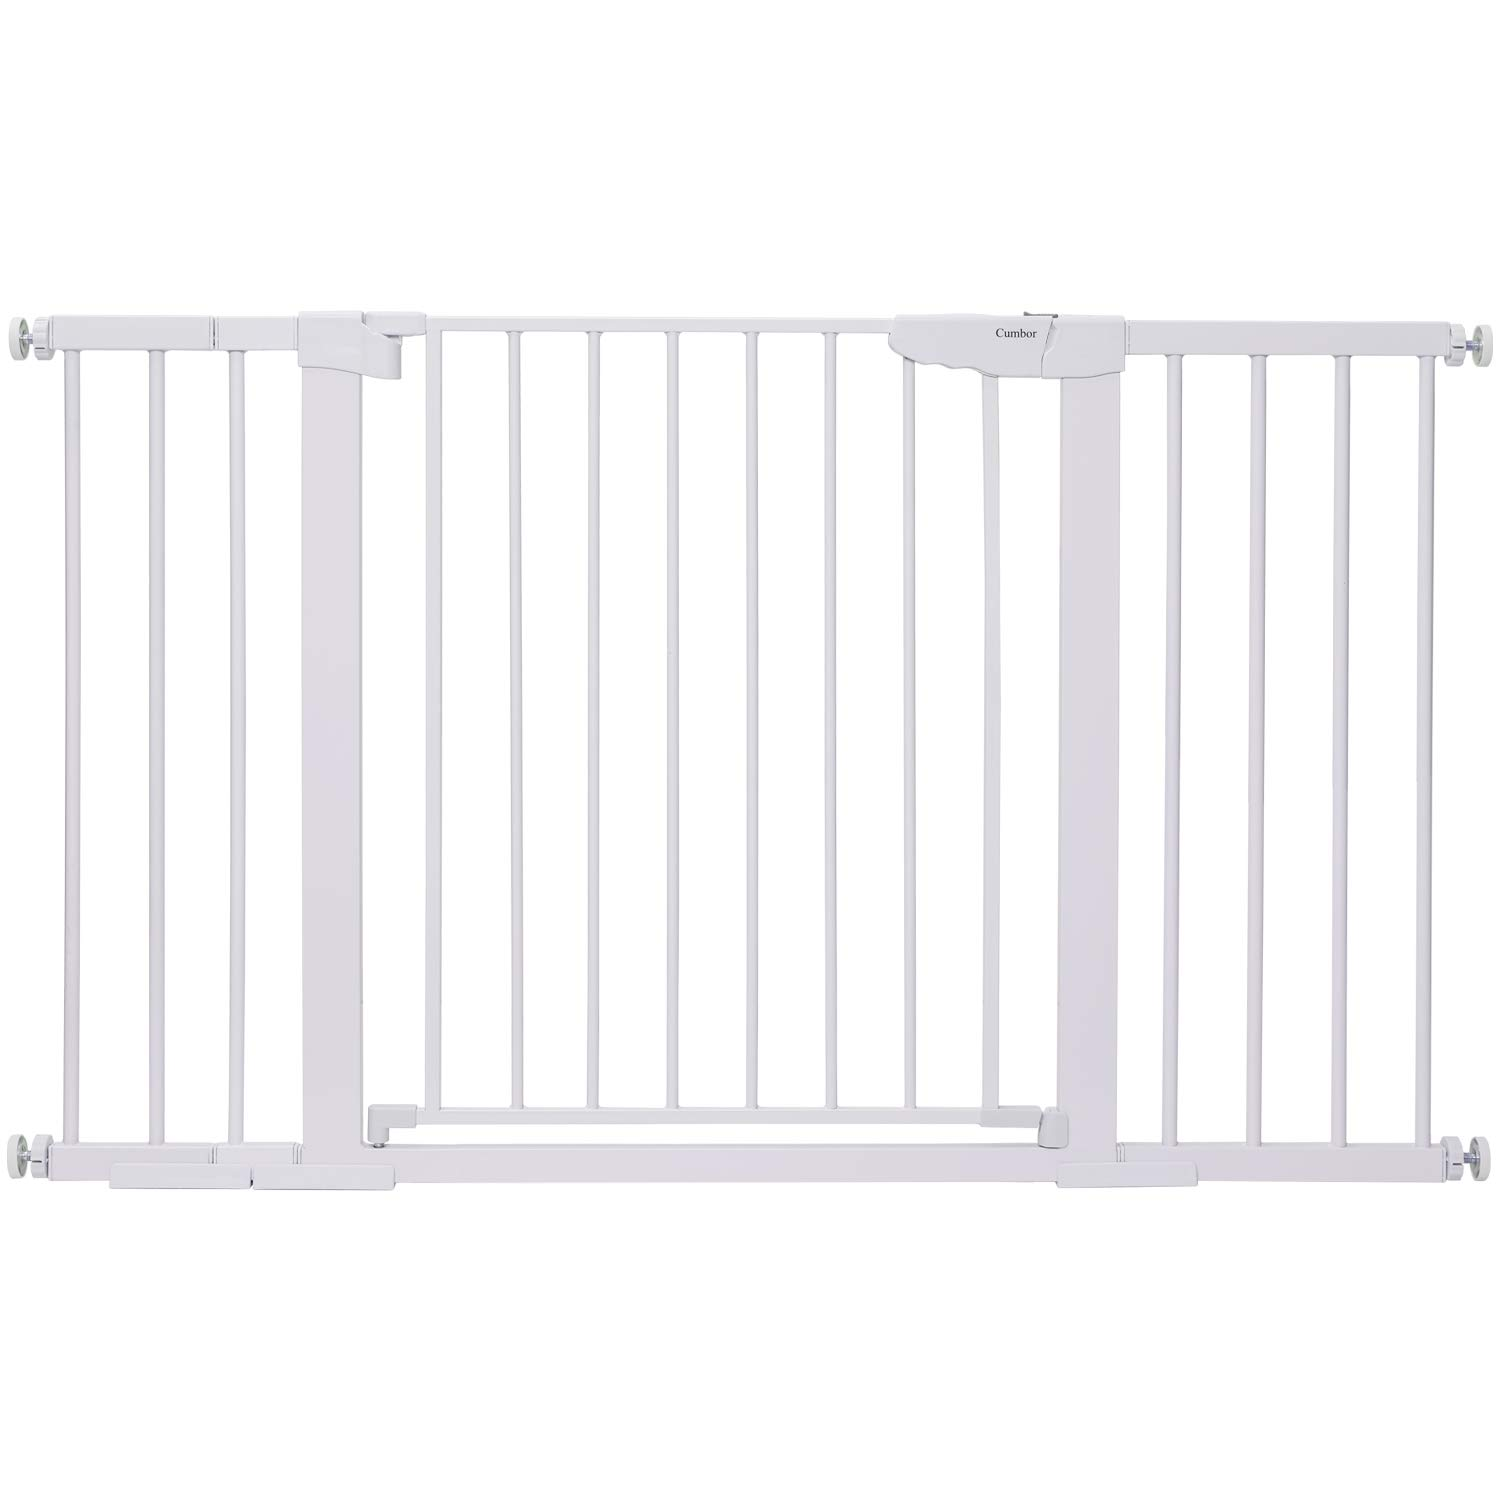 GYMAX Extensible Isolated Barrier Net Install Anywhere Easy Latch and Retractable Design 130 x 88cm Mesh Safety Gates for Babies and Pets